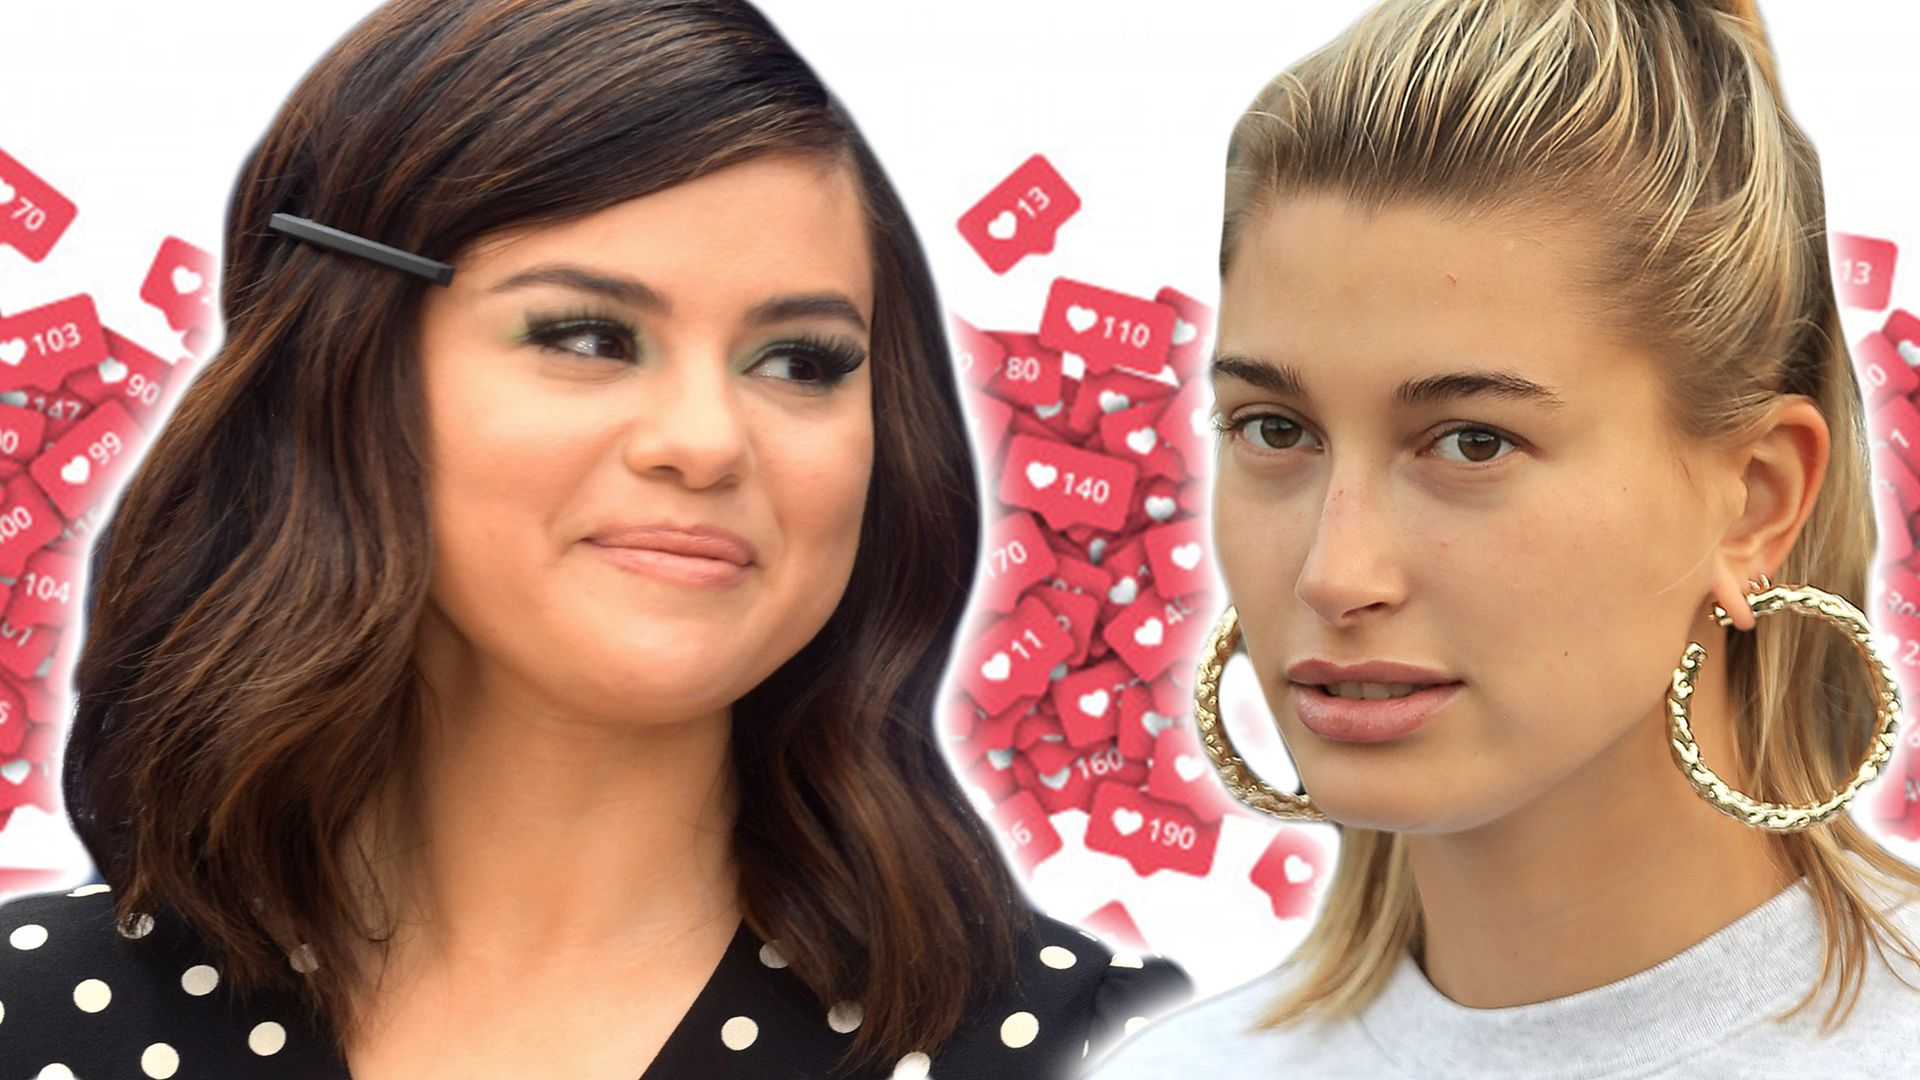 Justin Bieber and Hailey Baldwin's wedding guest list, including his ex